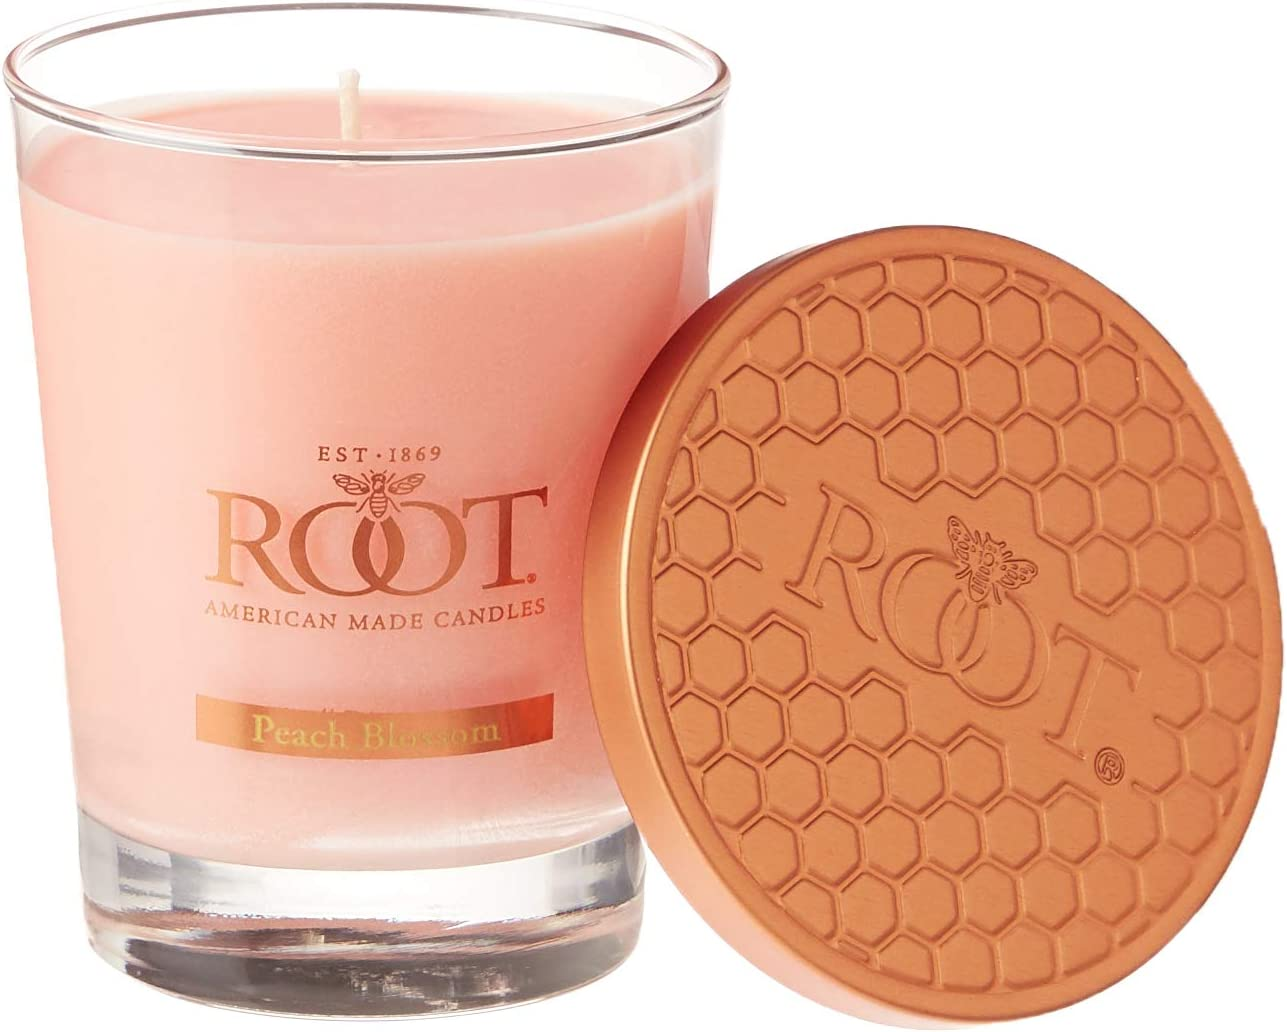 Root Candles Honeycomb Veriglass Scented Beeswax Blend Candle, Large, Peach Blossom